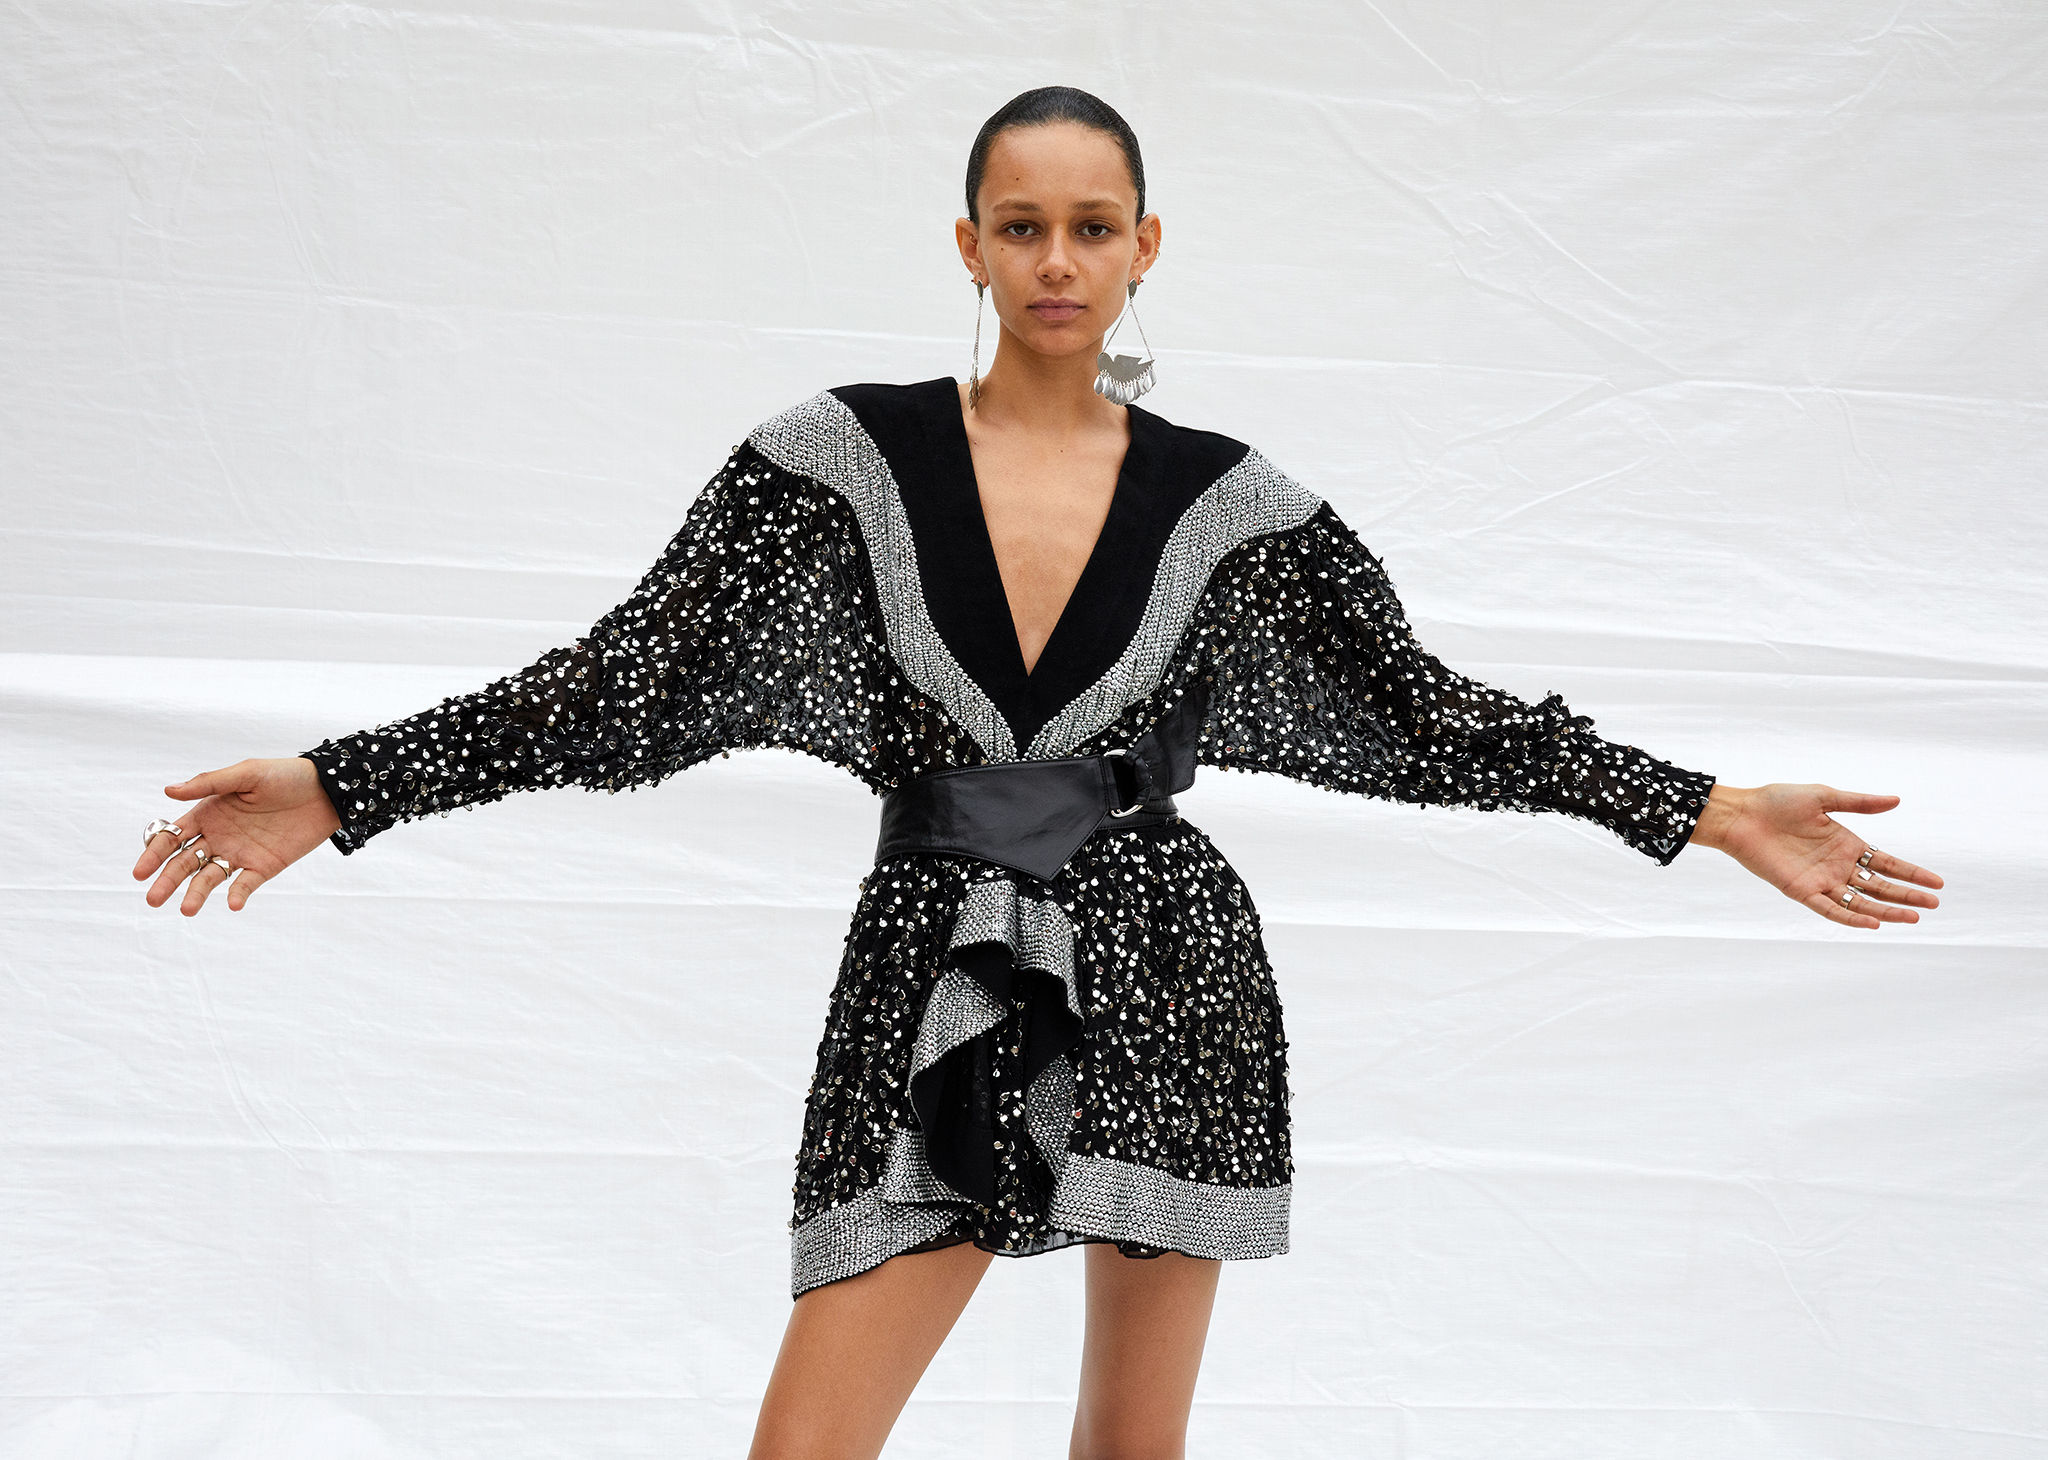 The model is standing, arms raised on each side, wearing the Caldes dress. Click on this picture to see the Isabel Marant Winter 2019 runway selection.